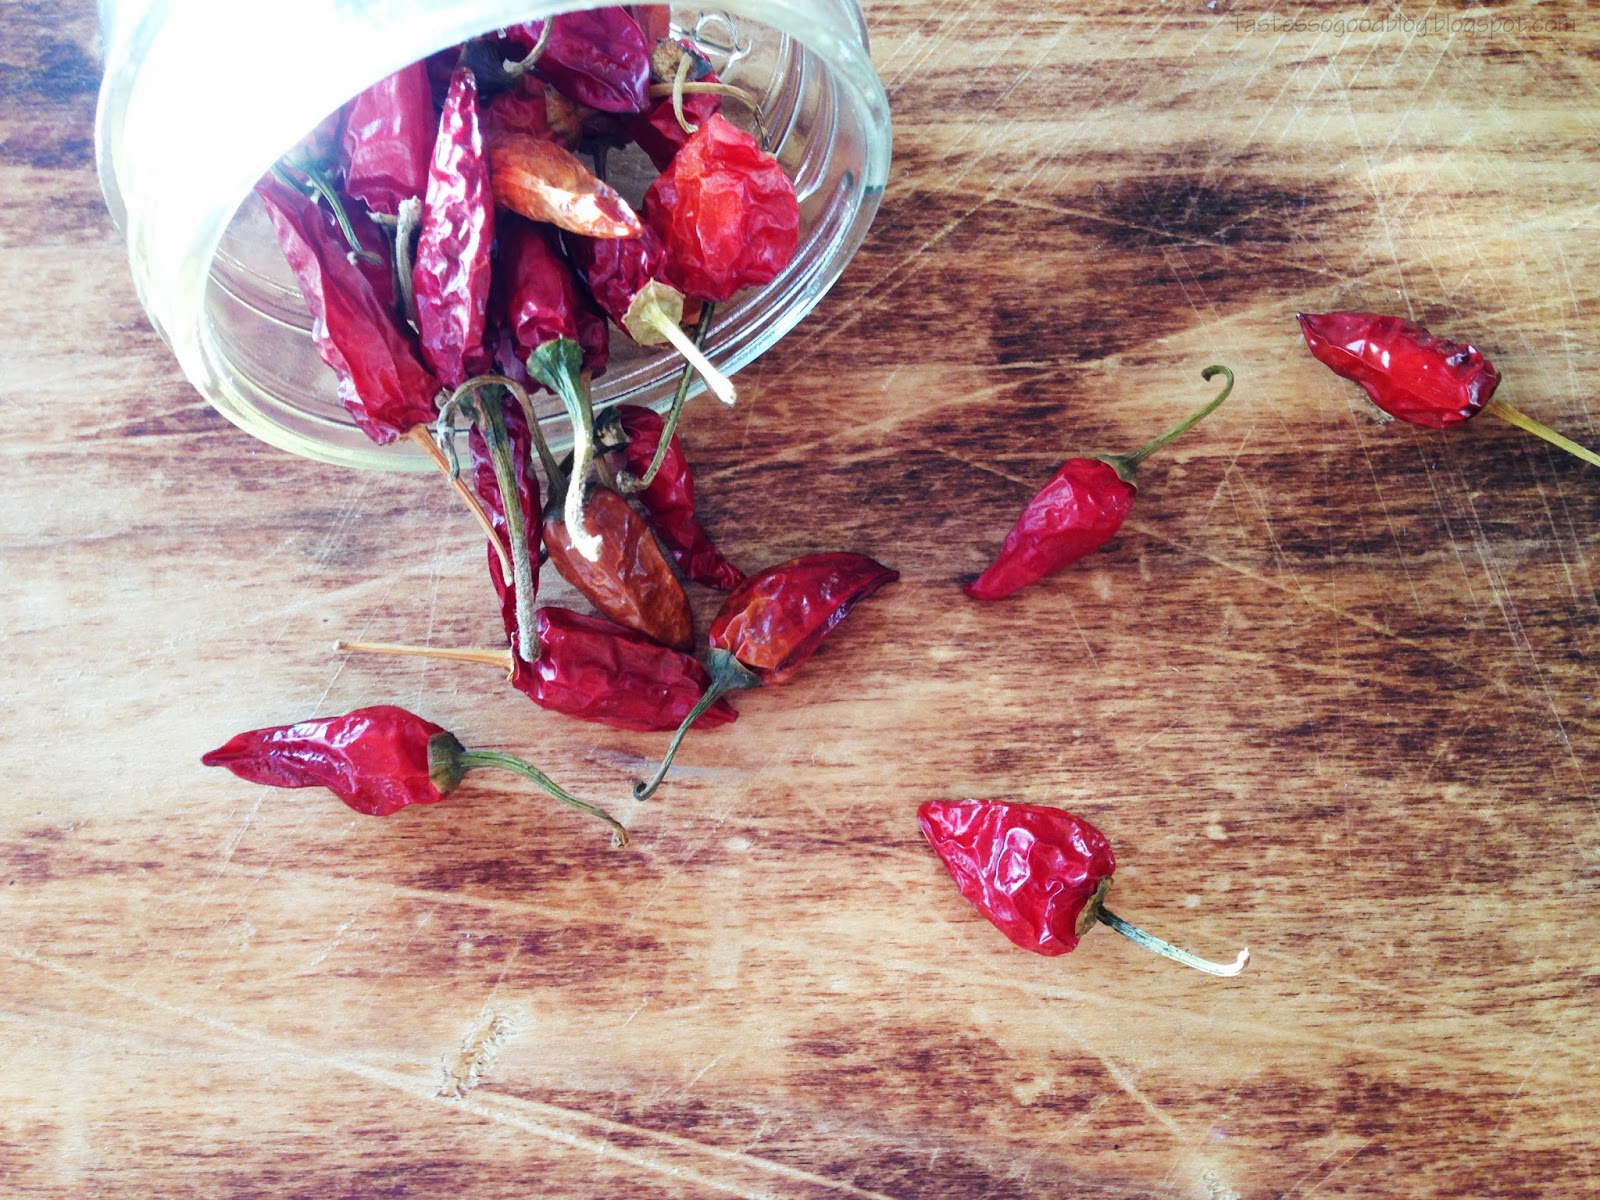 Dried Chile Peppers : Homemade Salsa Recipe || TastesSoGoodBlog.Blogspot.com